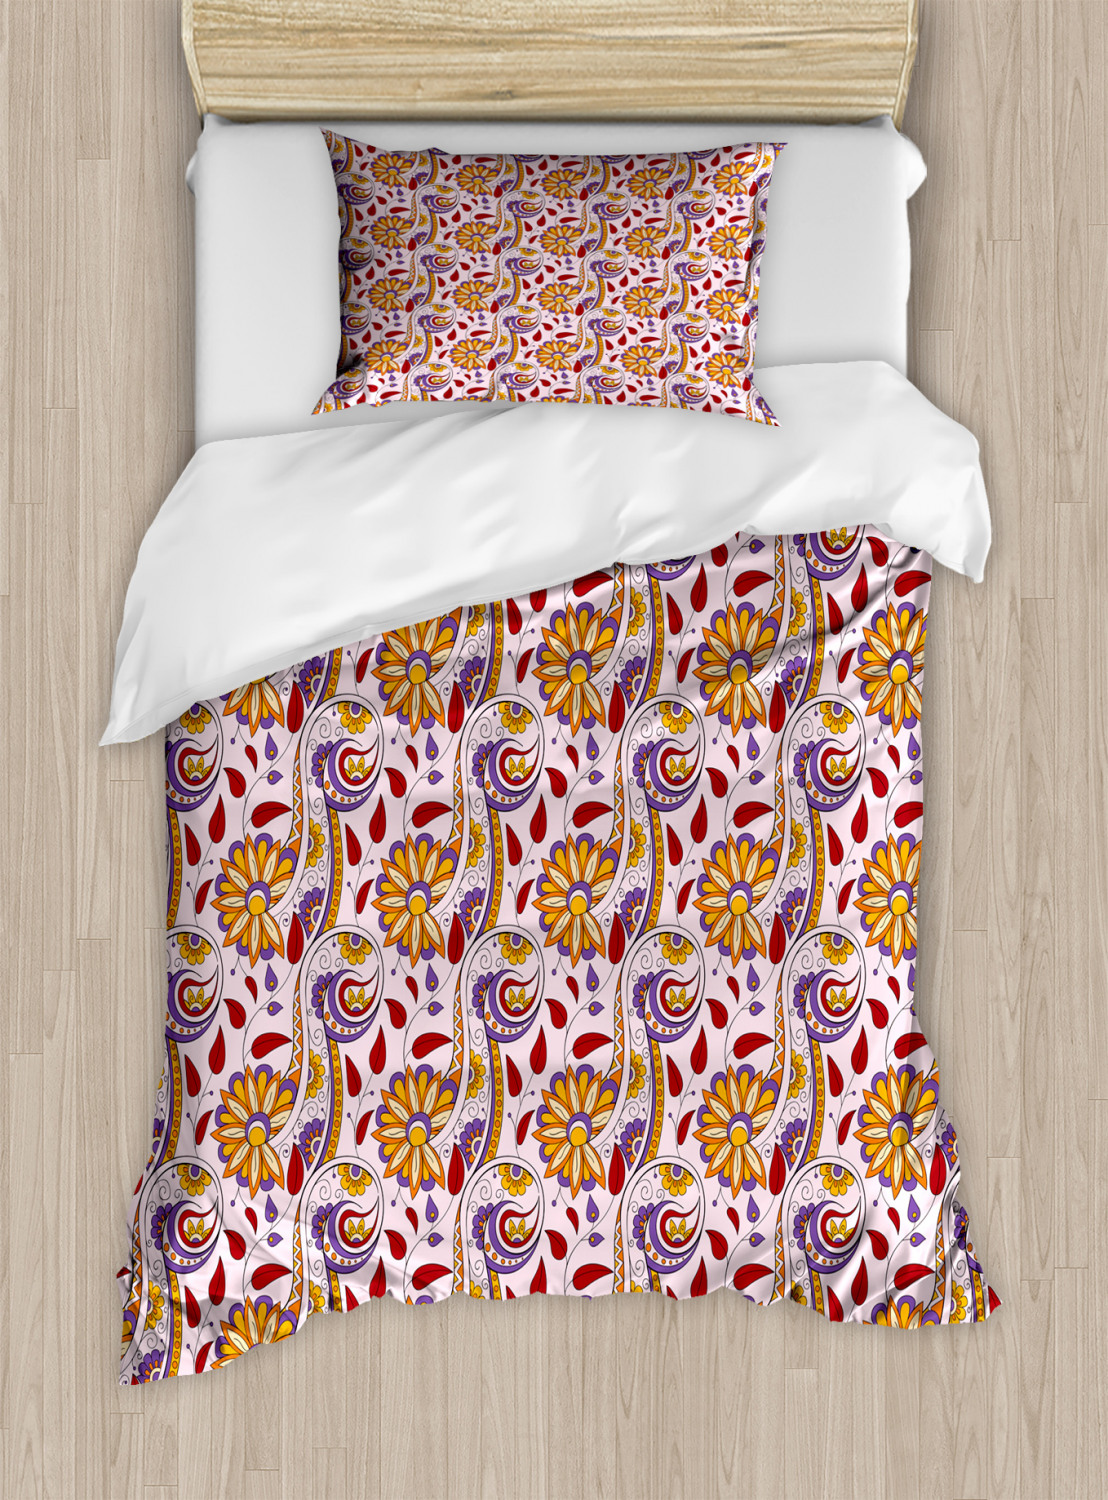 Timeless-Oriental-Duvet-Cover-Set-Twin-Queen-King-Sizes-with-Pillow-Shams thumbnail 37